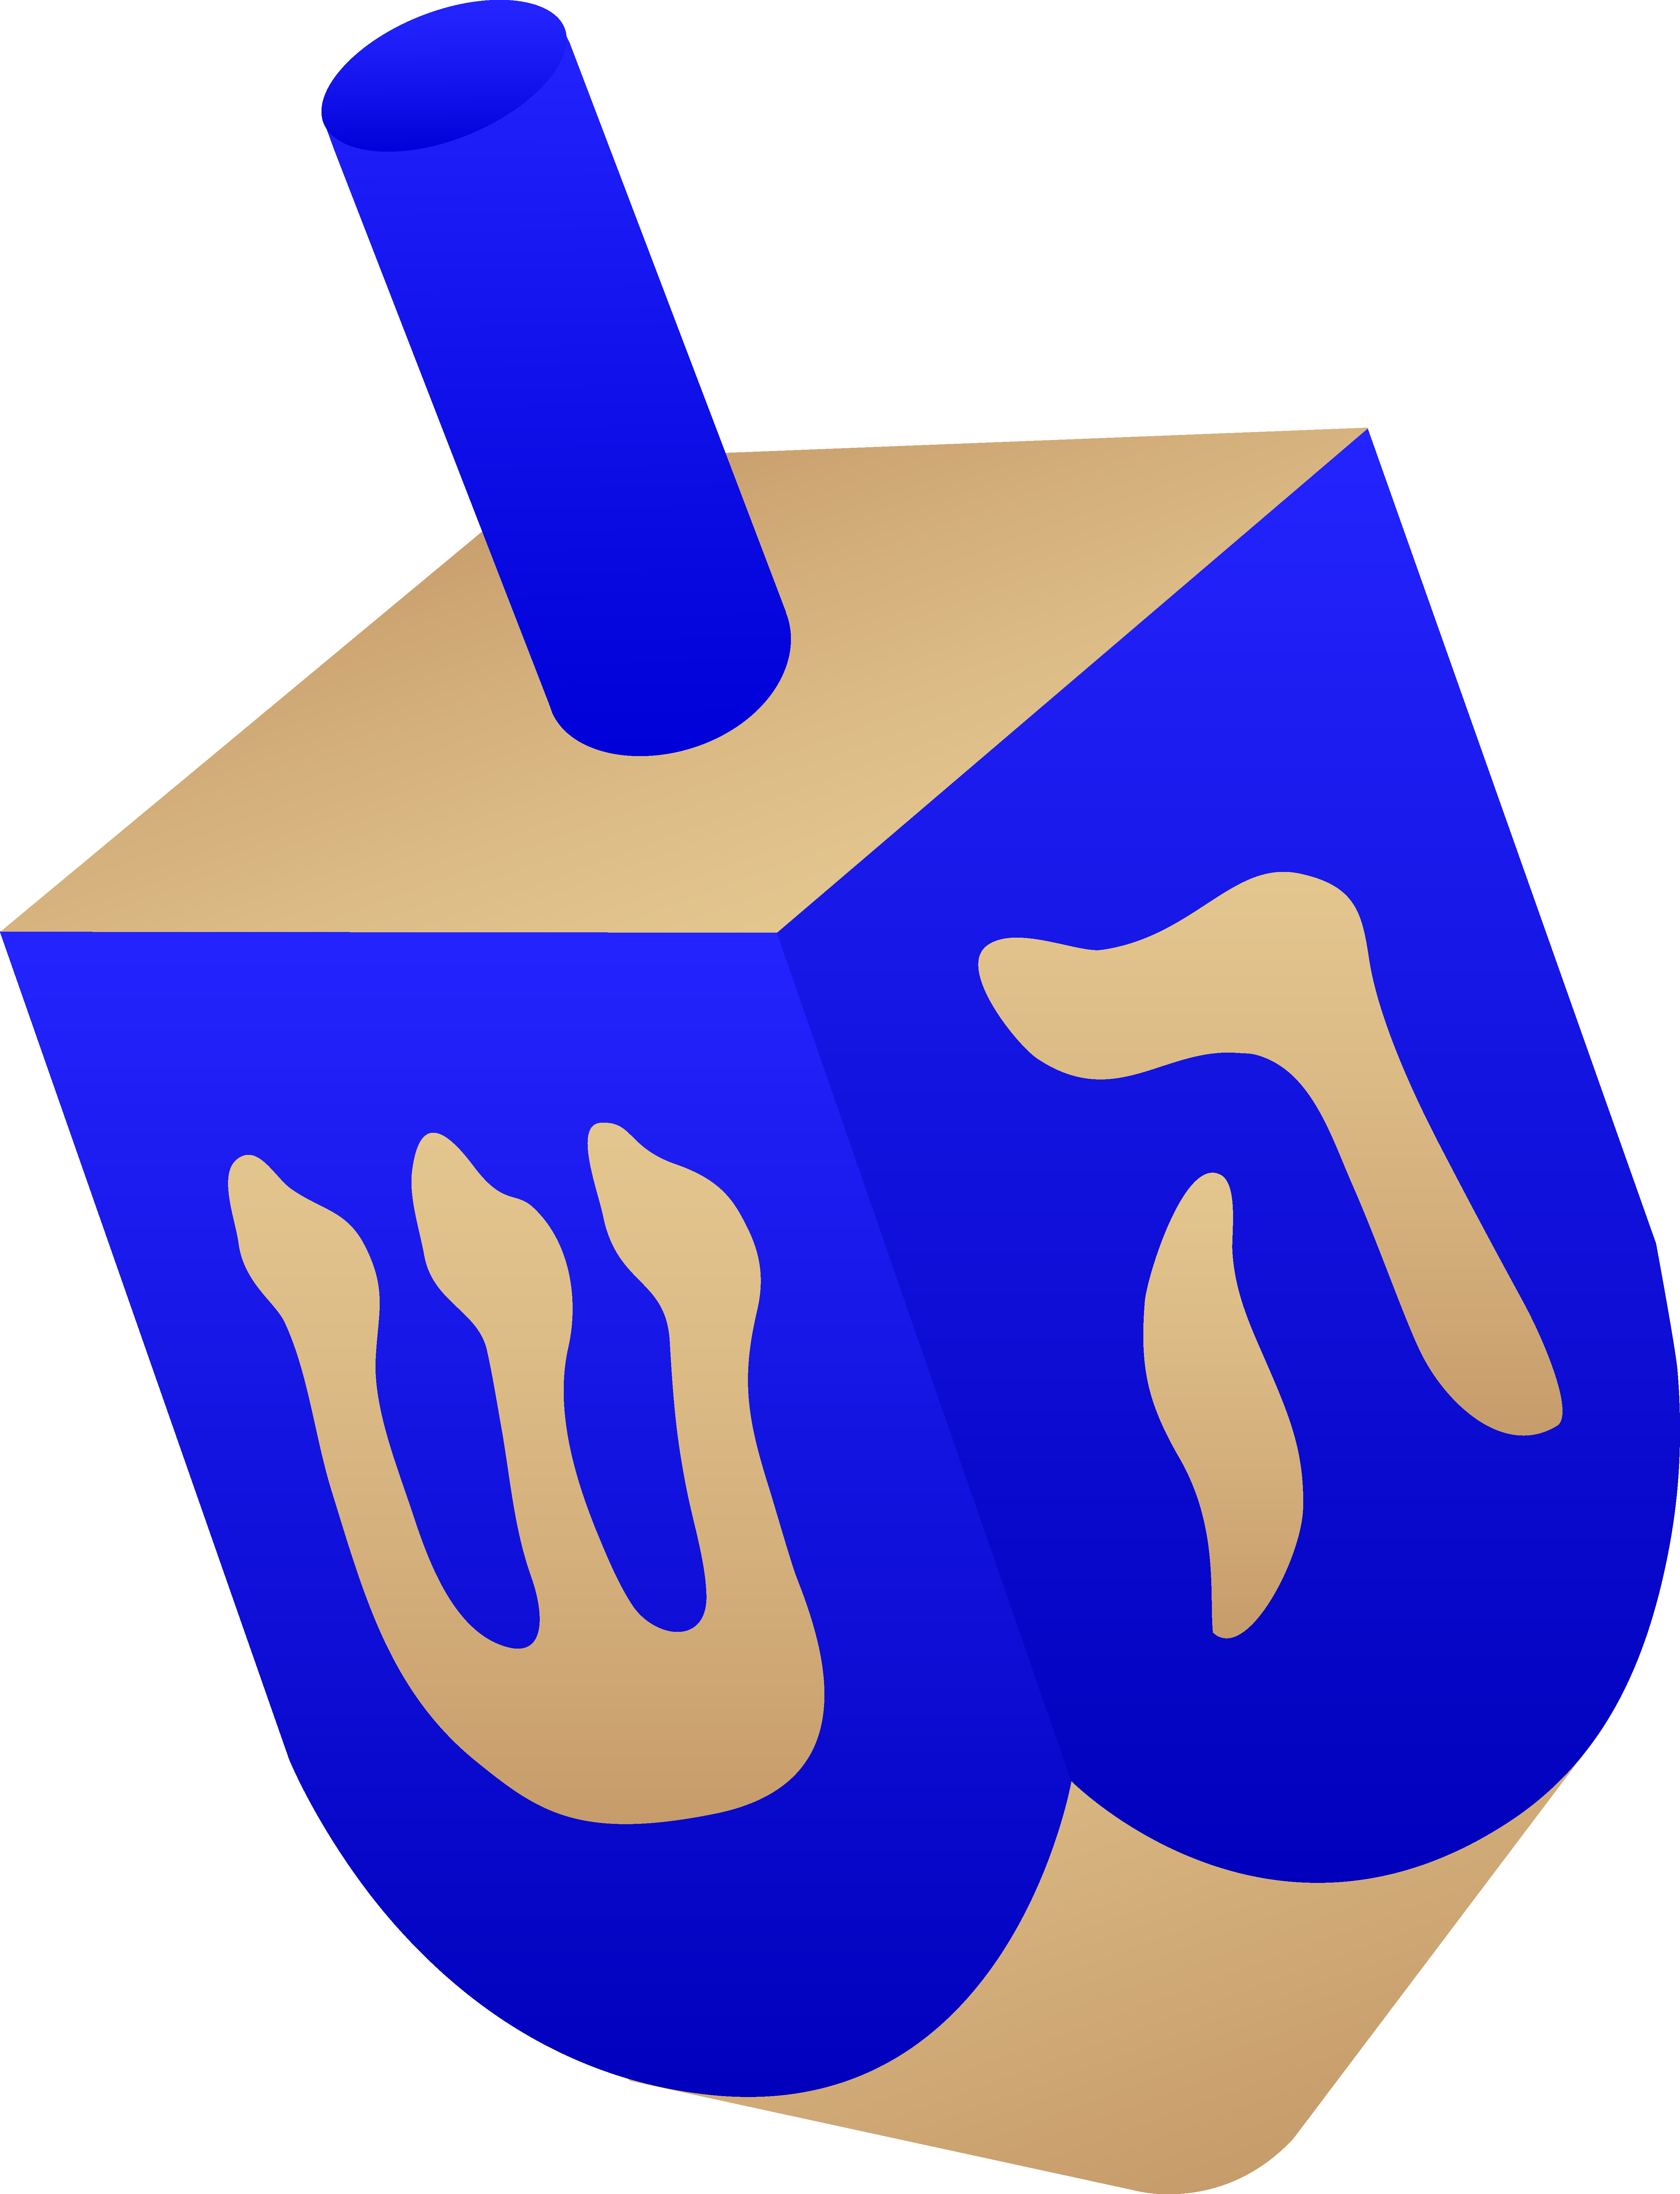 Jew symbol clipart transparent